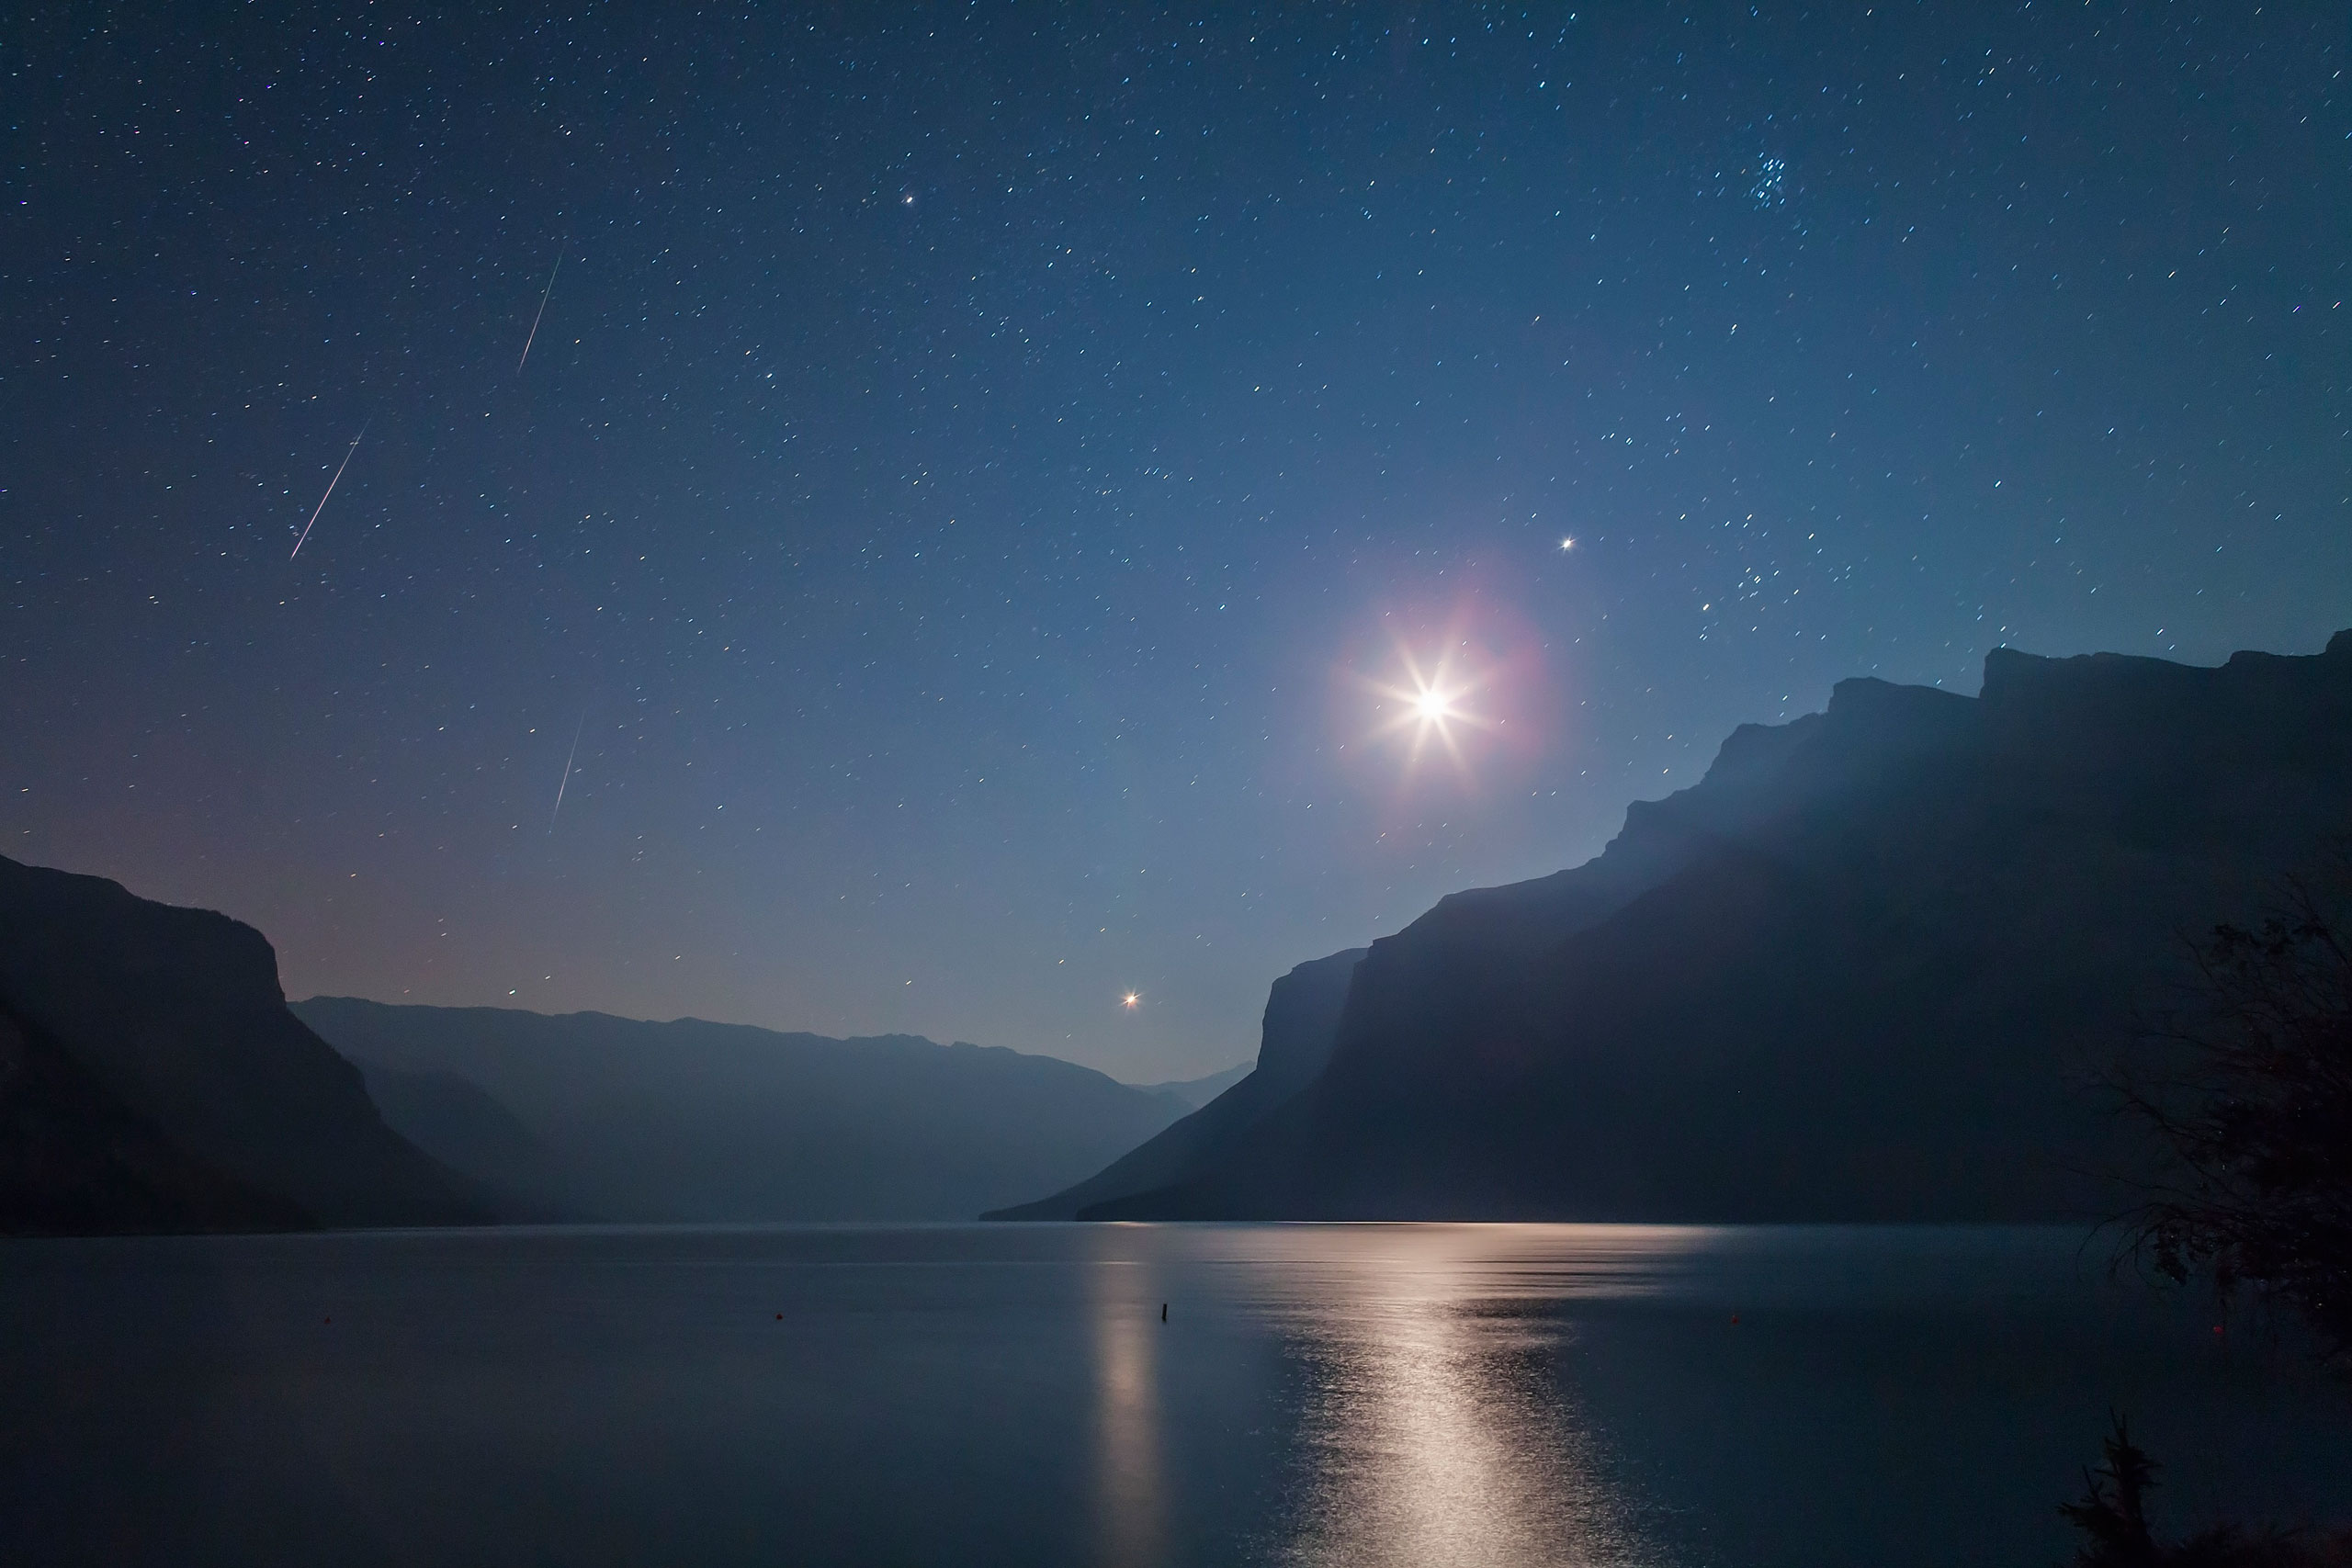 Three Perseid meteors appear in the predawn sky over Lake Minnewanka in Banff National Park, Alberta, Canada on Aug. 12, 2012.